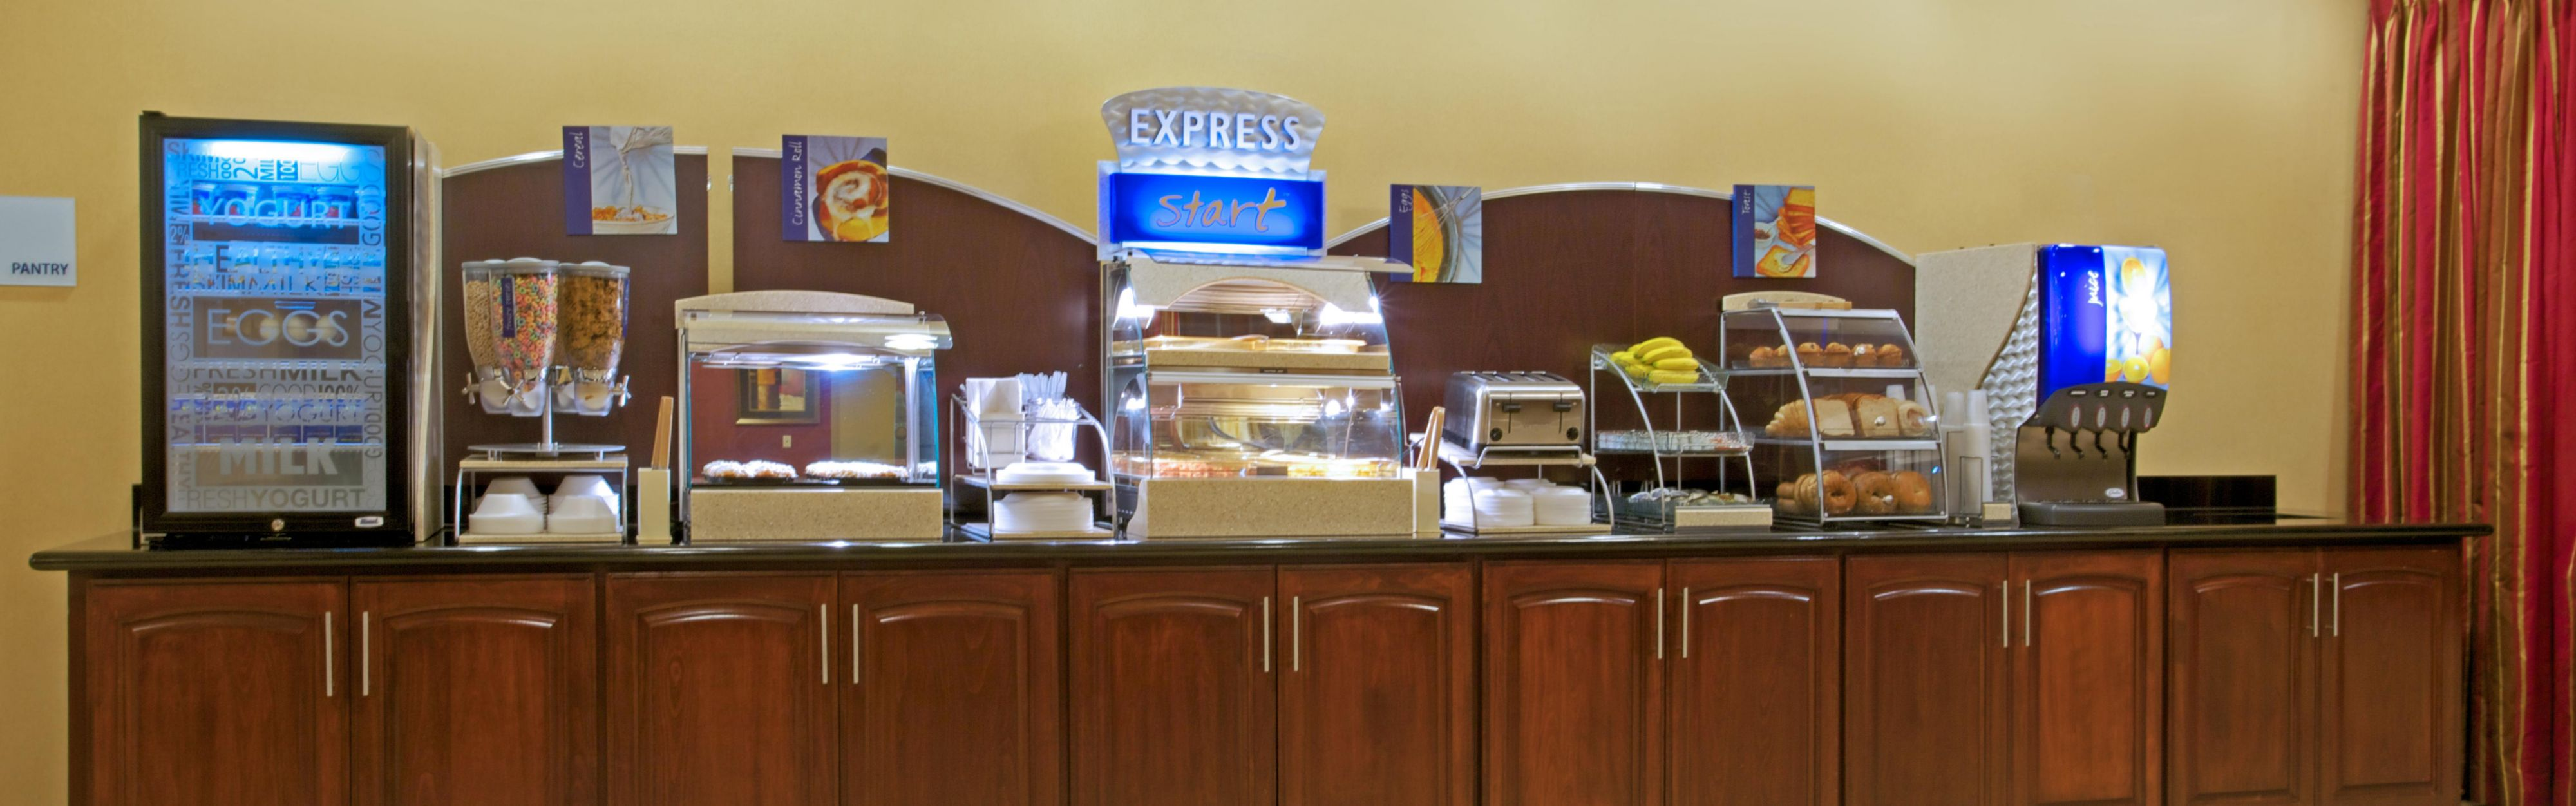 Holiday Inn Express & Suites Vidor South image 3